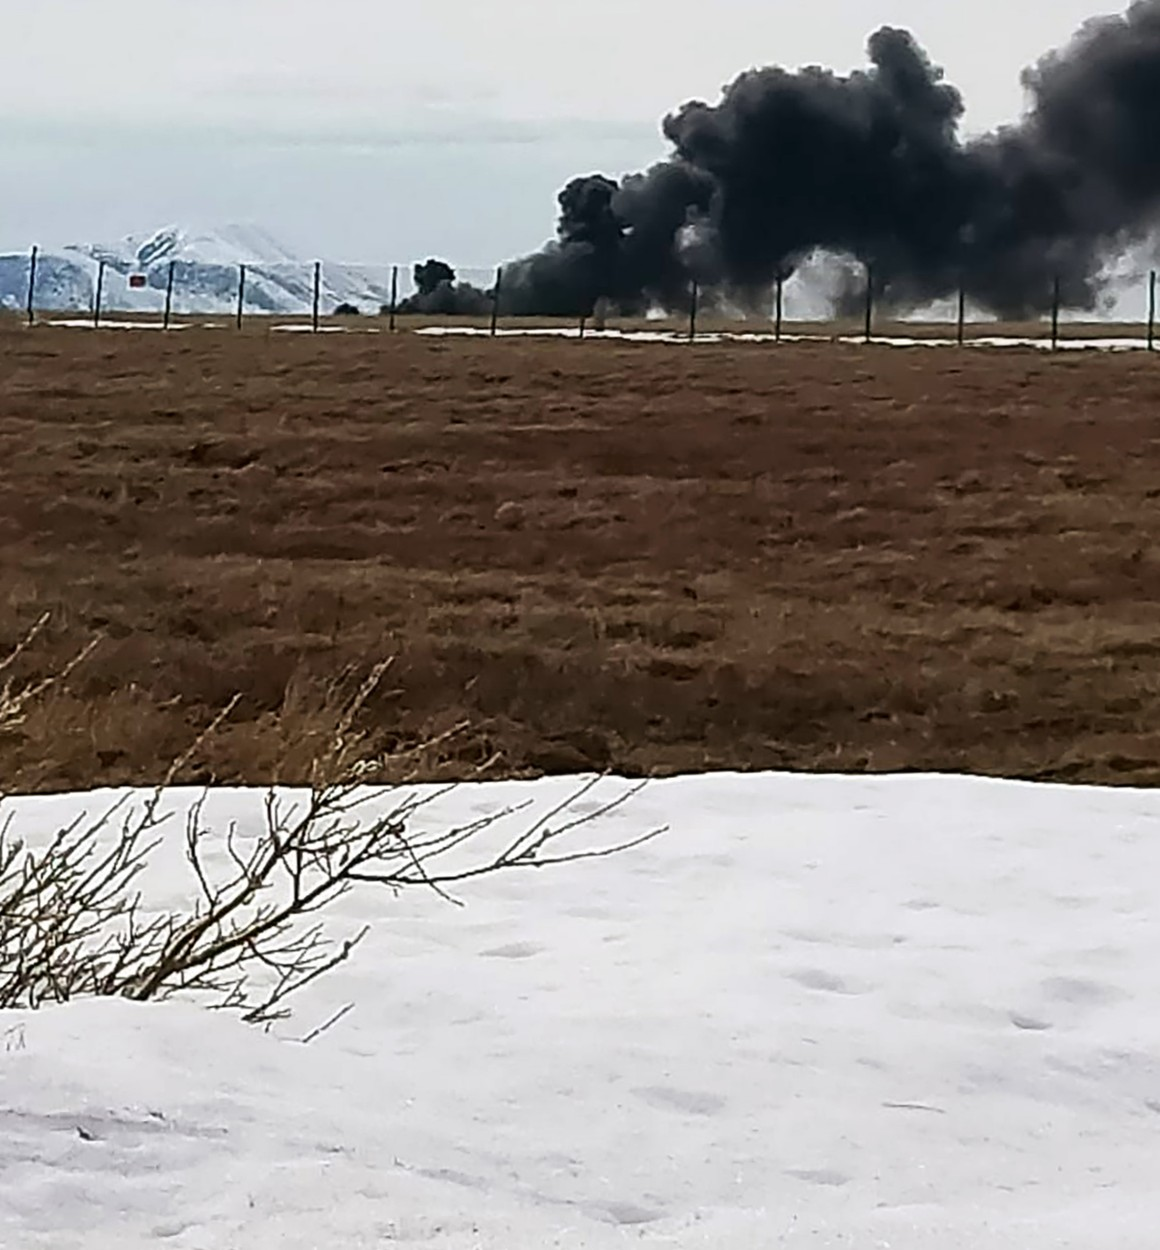 The helicopter was hovering at 15 metres above the ground to test engines when the tragedy struck, Image: 522392964, License: Rights-managed, Restrictions: , Model Release: no, Credit line: social media / East2West News / Profimedia